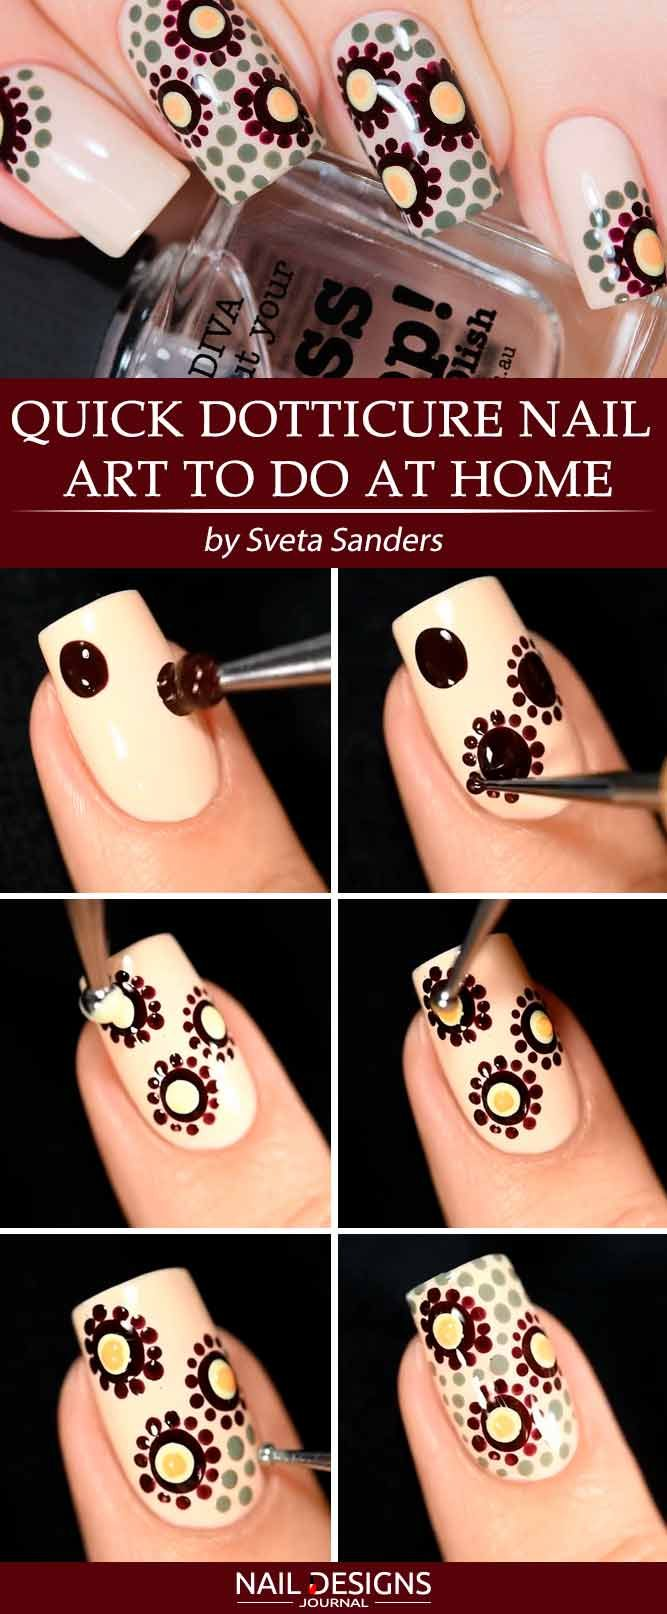 13 Super Easy Diy Nails Designs Every Girl Should Know Pinterest